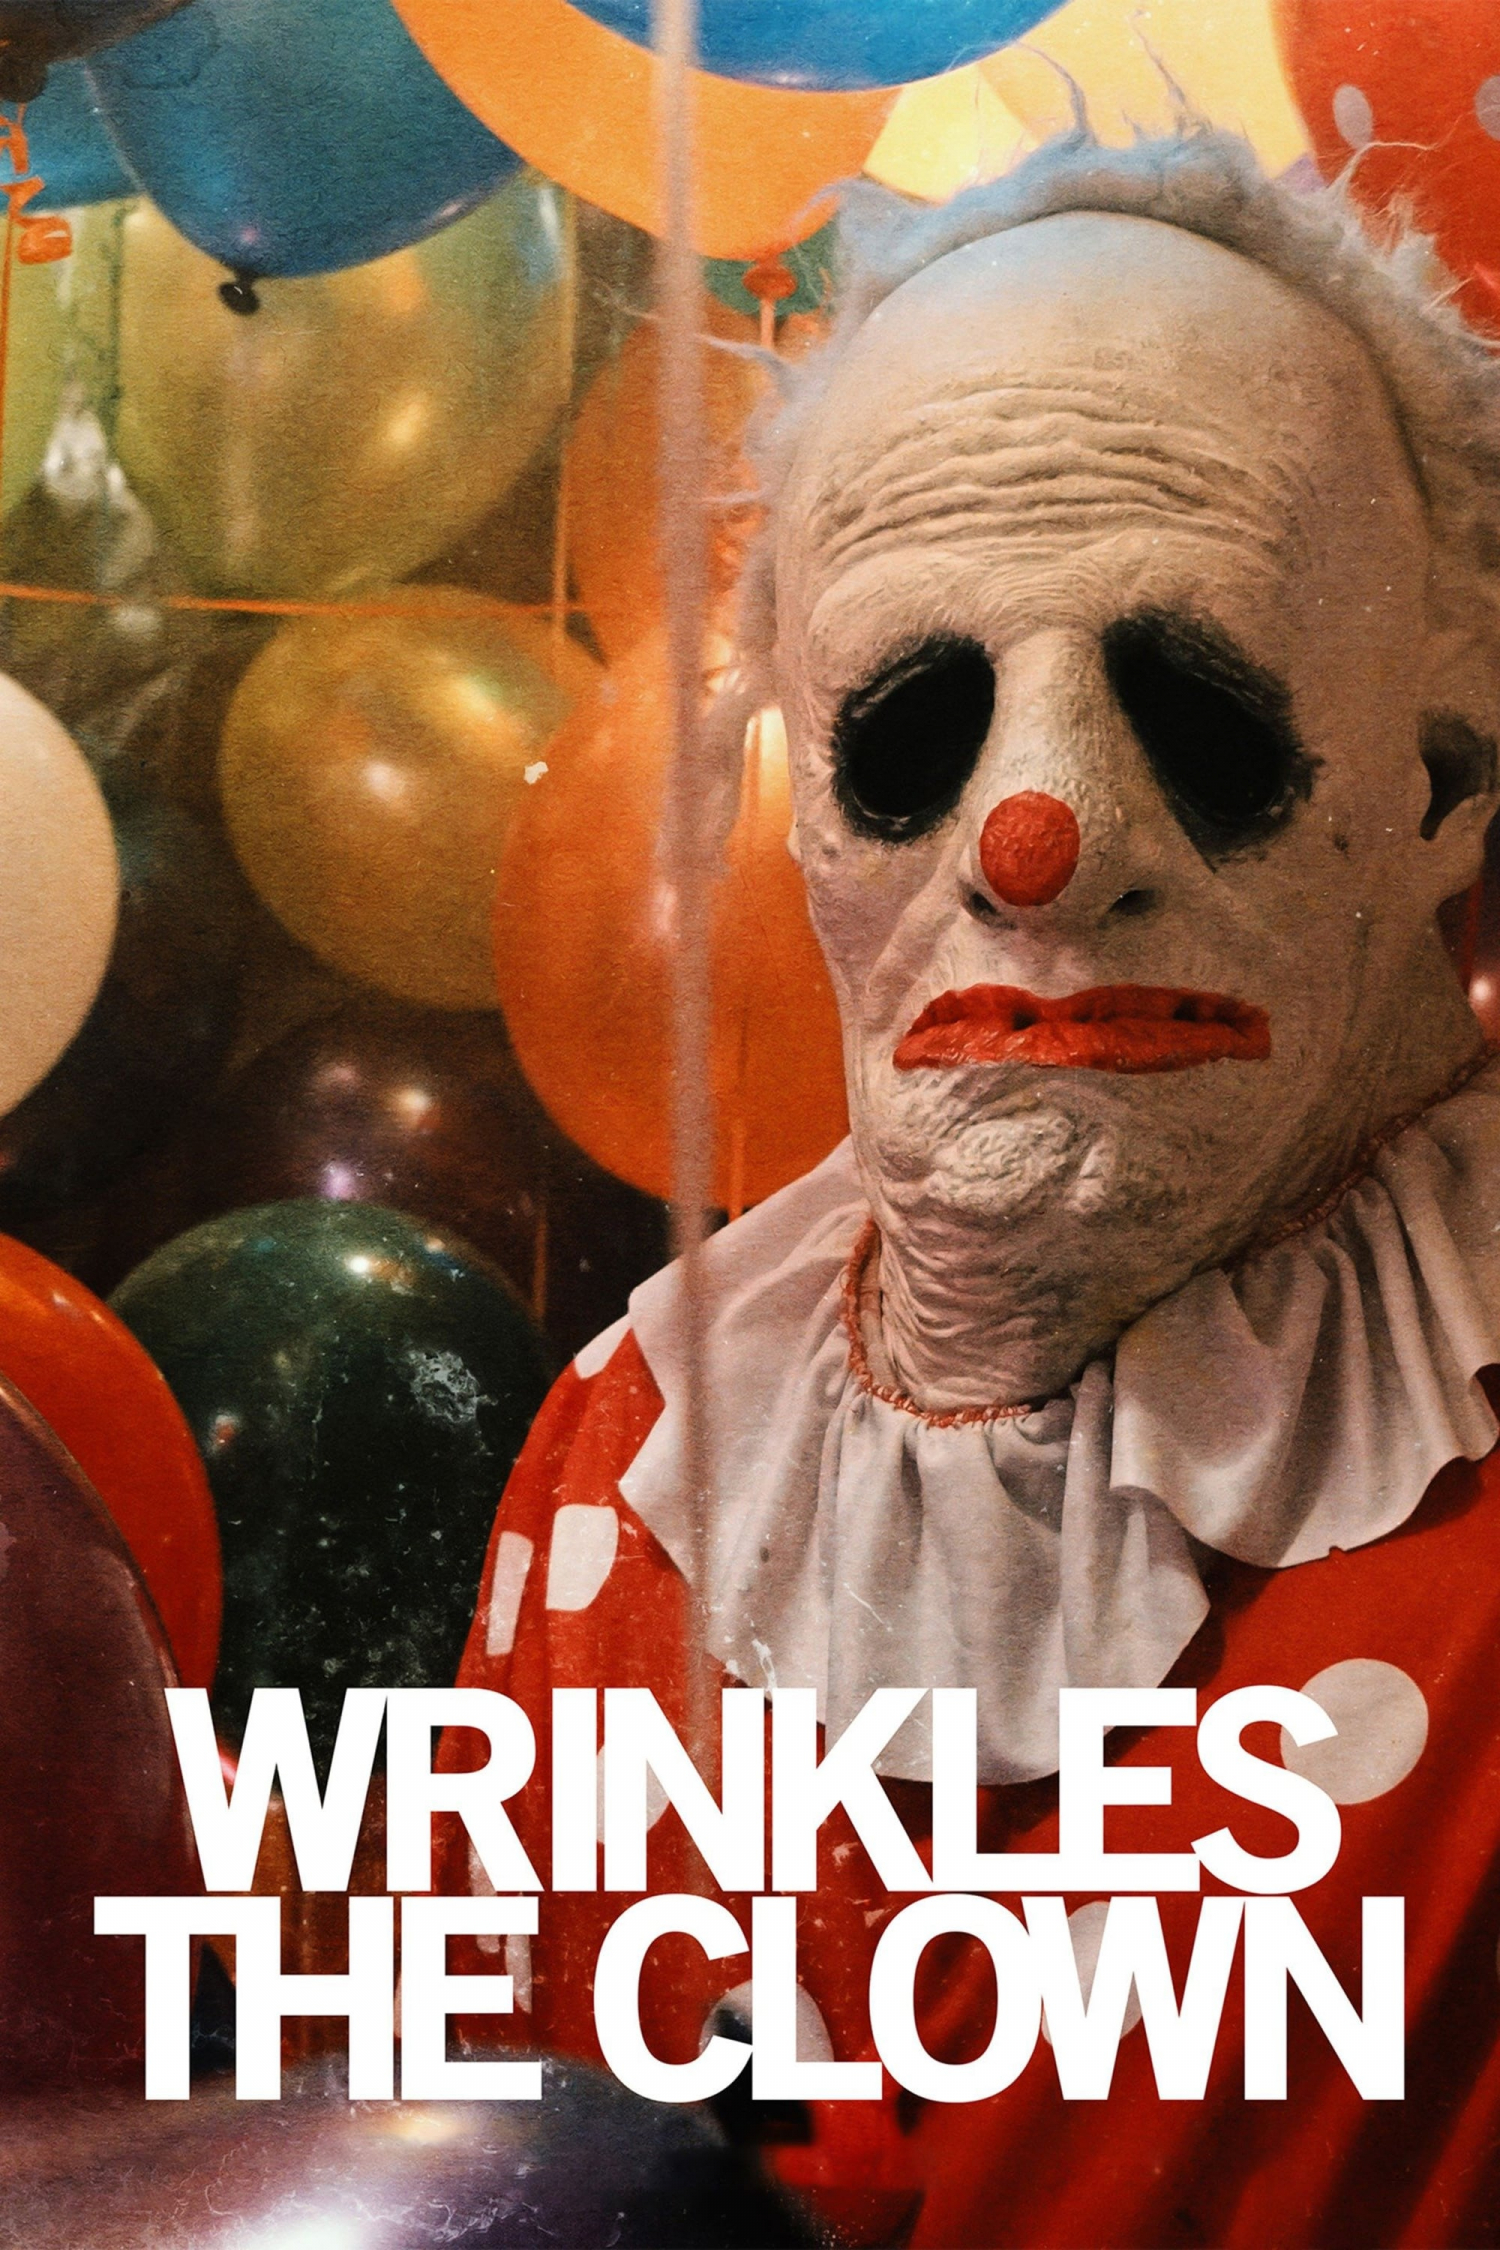 Wrinkles The Clown Movie Info And Showtimes In Trinidad